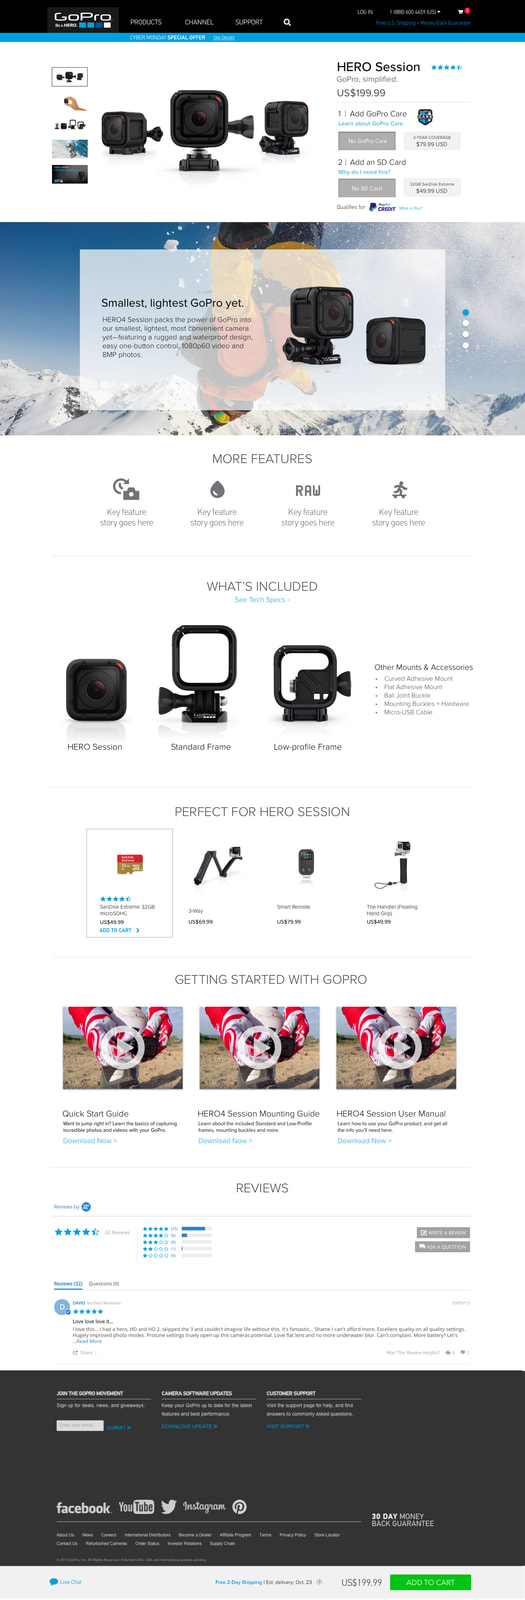 GoPro   Product Page Redesign